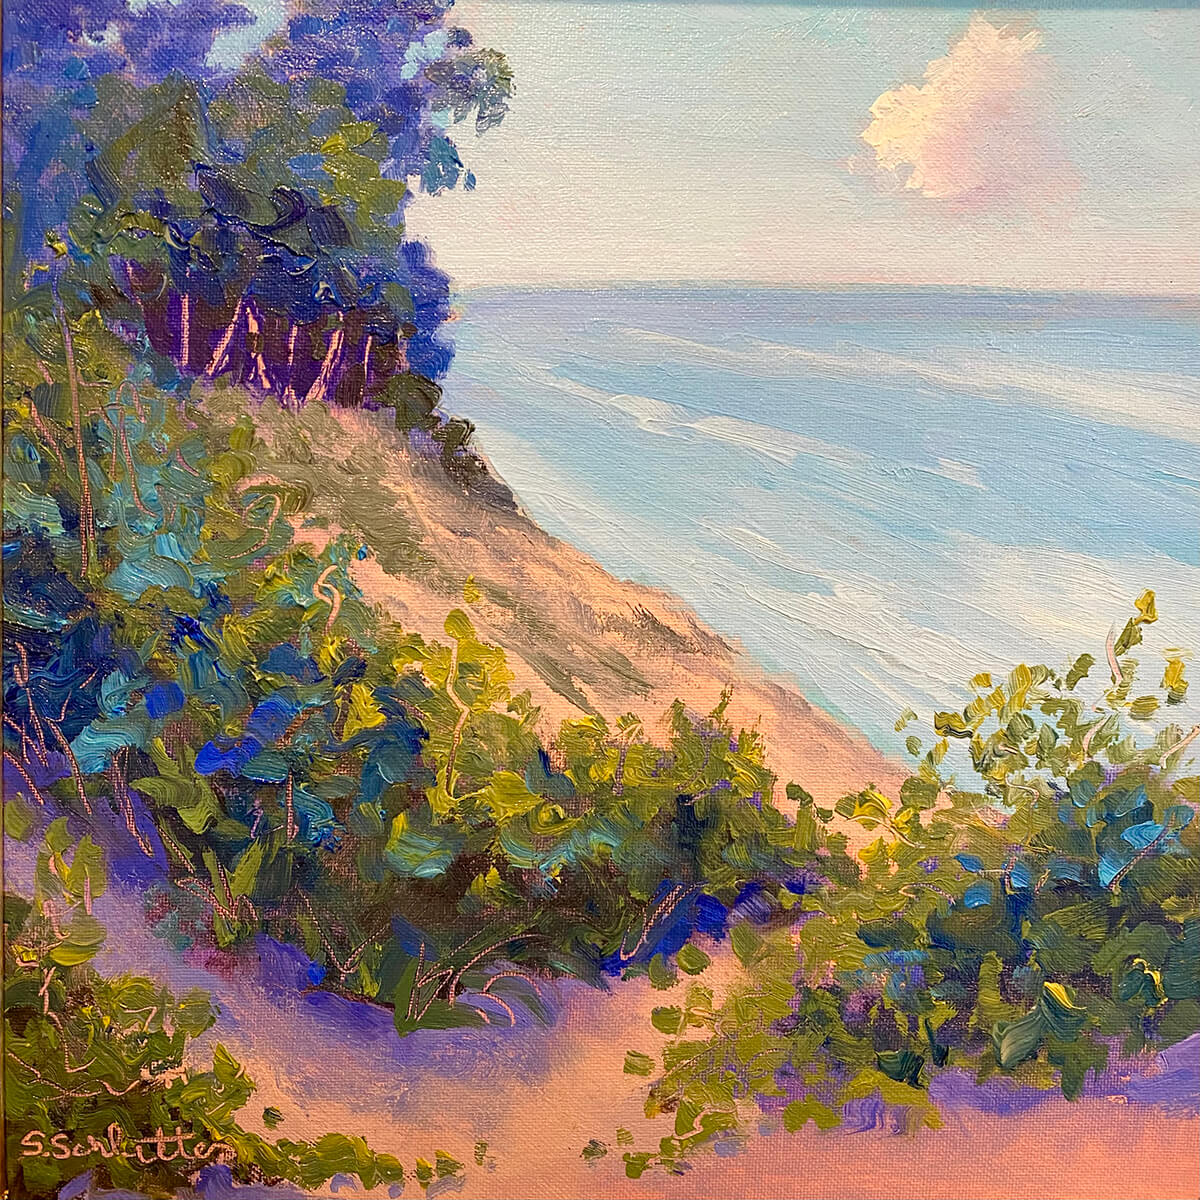 Pyramid Point II painting by Stephanie Schlatter